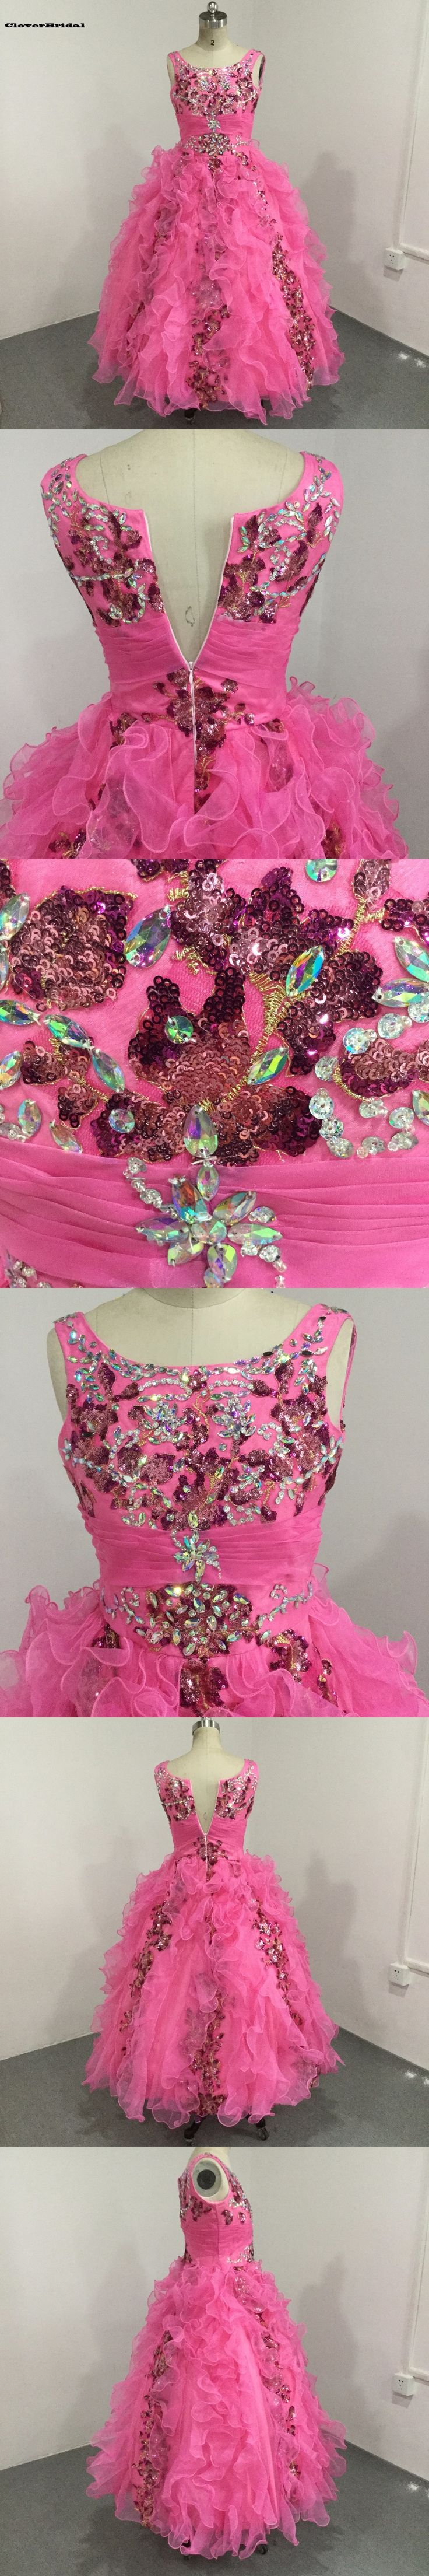 Sparking pink organza beaded ruffled sequined junior pageant dresses straps tank embellished bodice girls long pageant dress